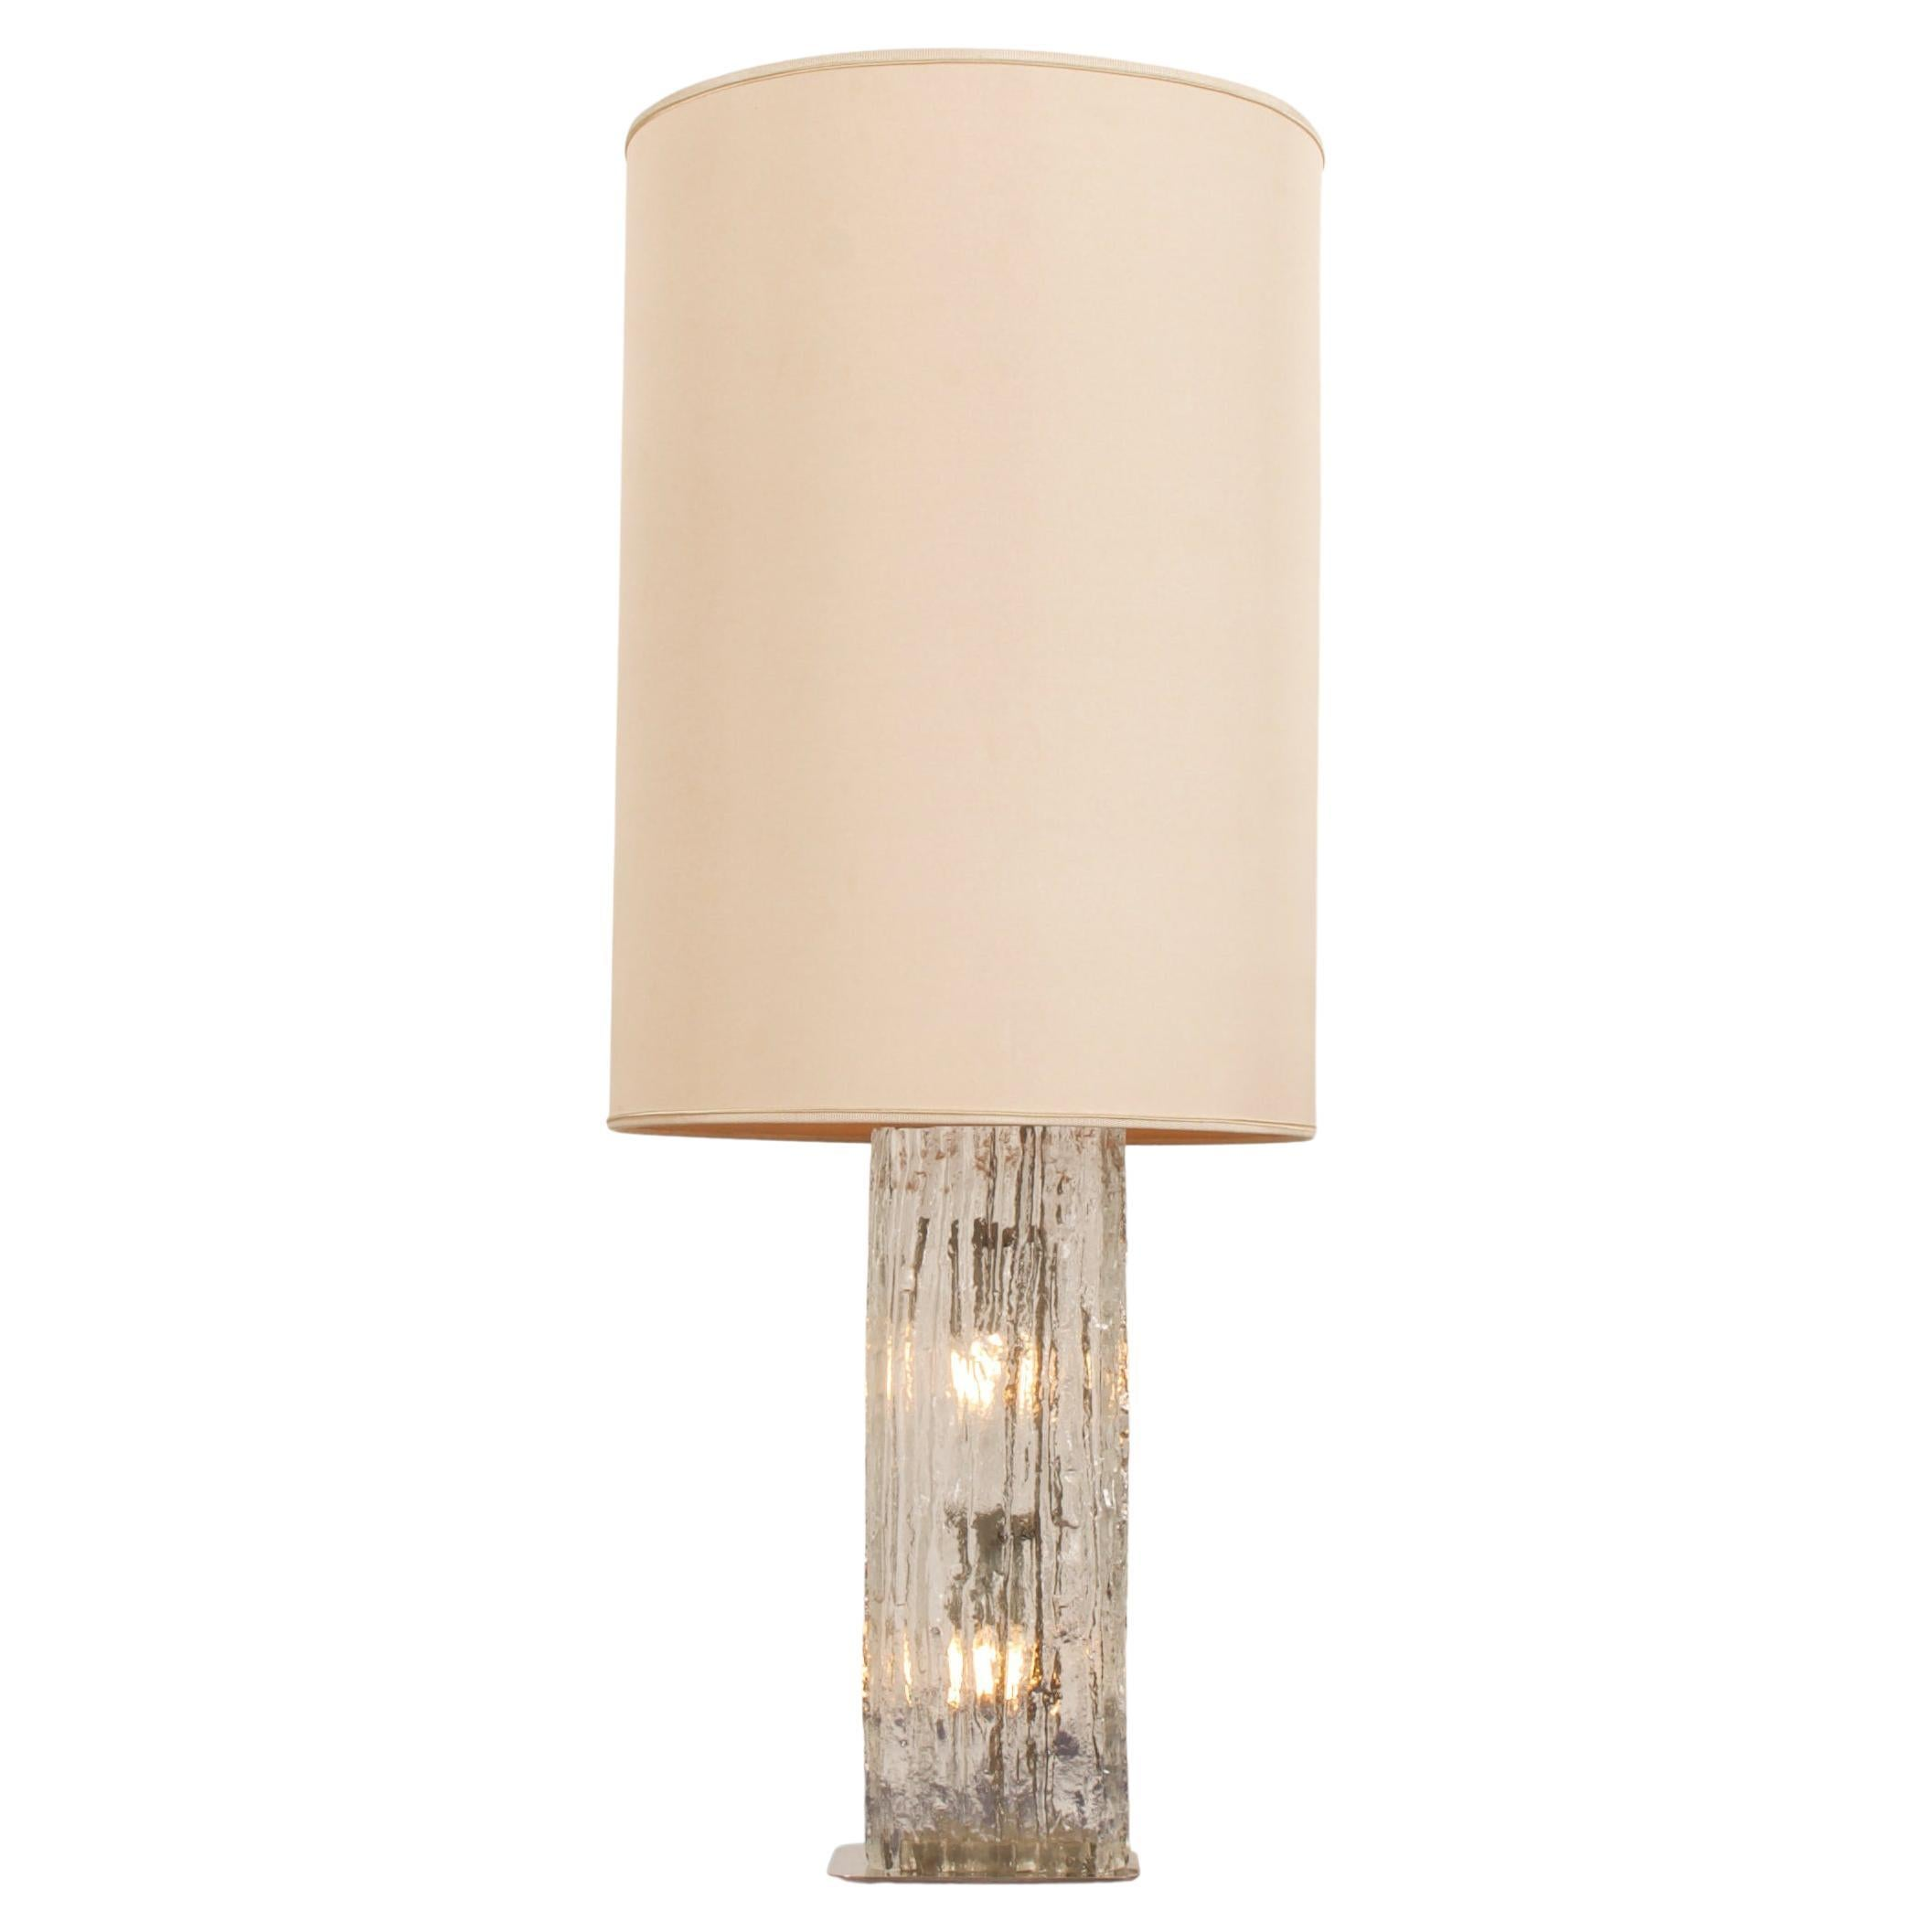 Table Lamp by Kalmar Frankenberg with an Illuminated Ice Glass Stand